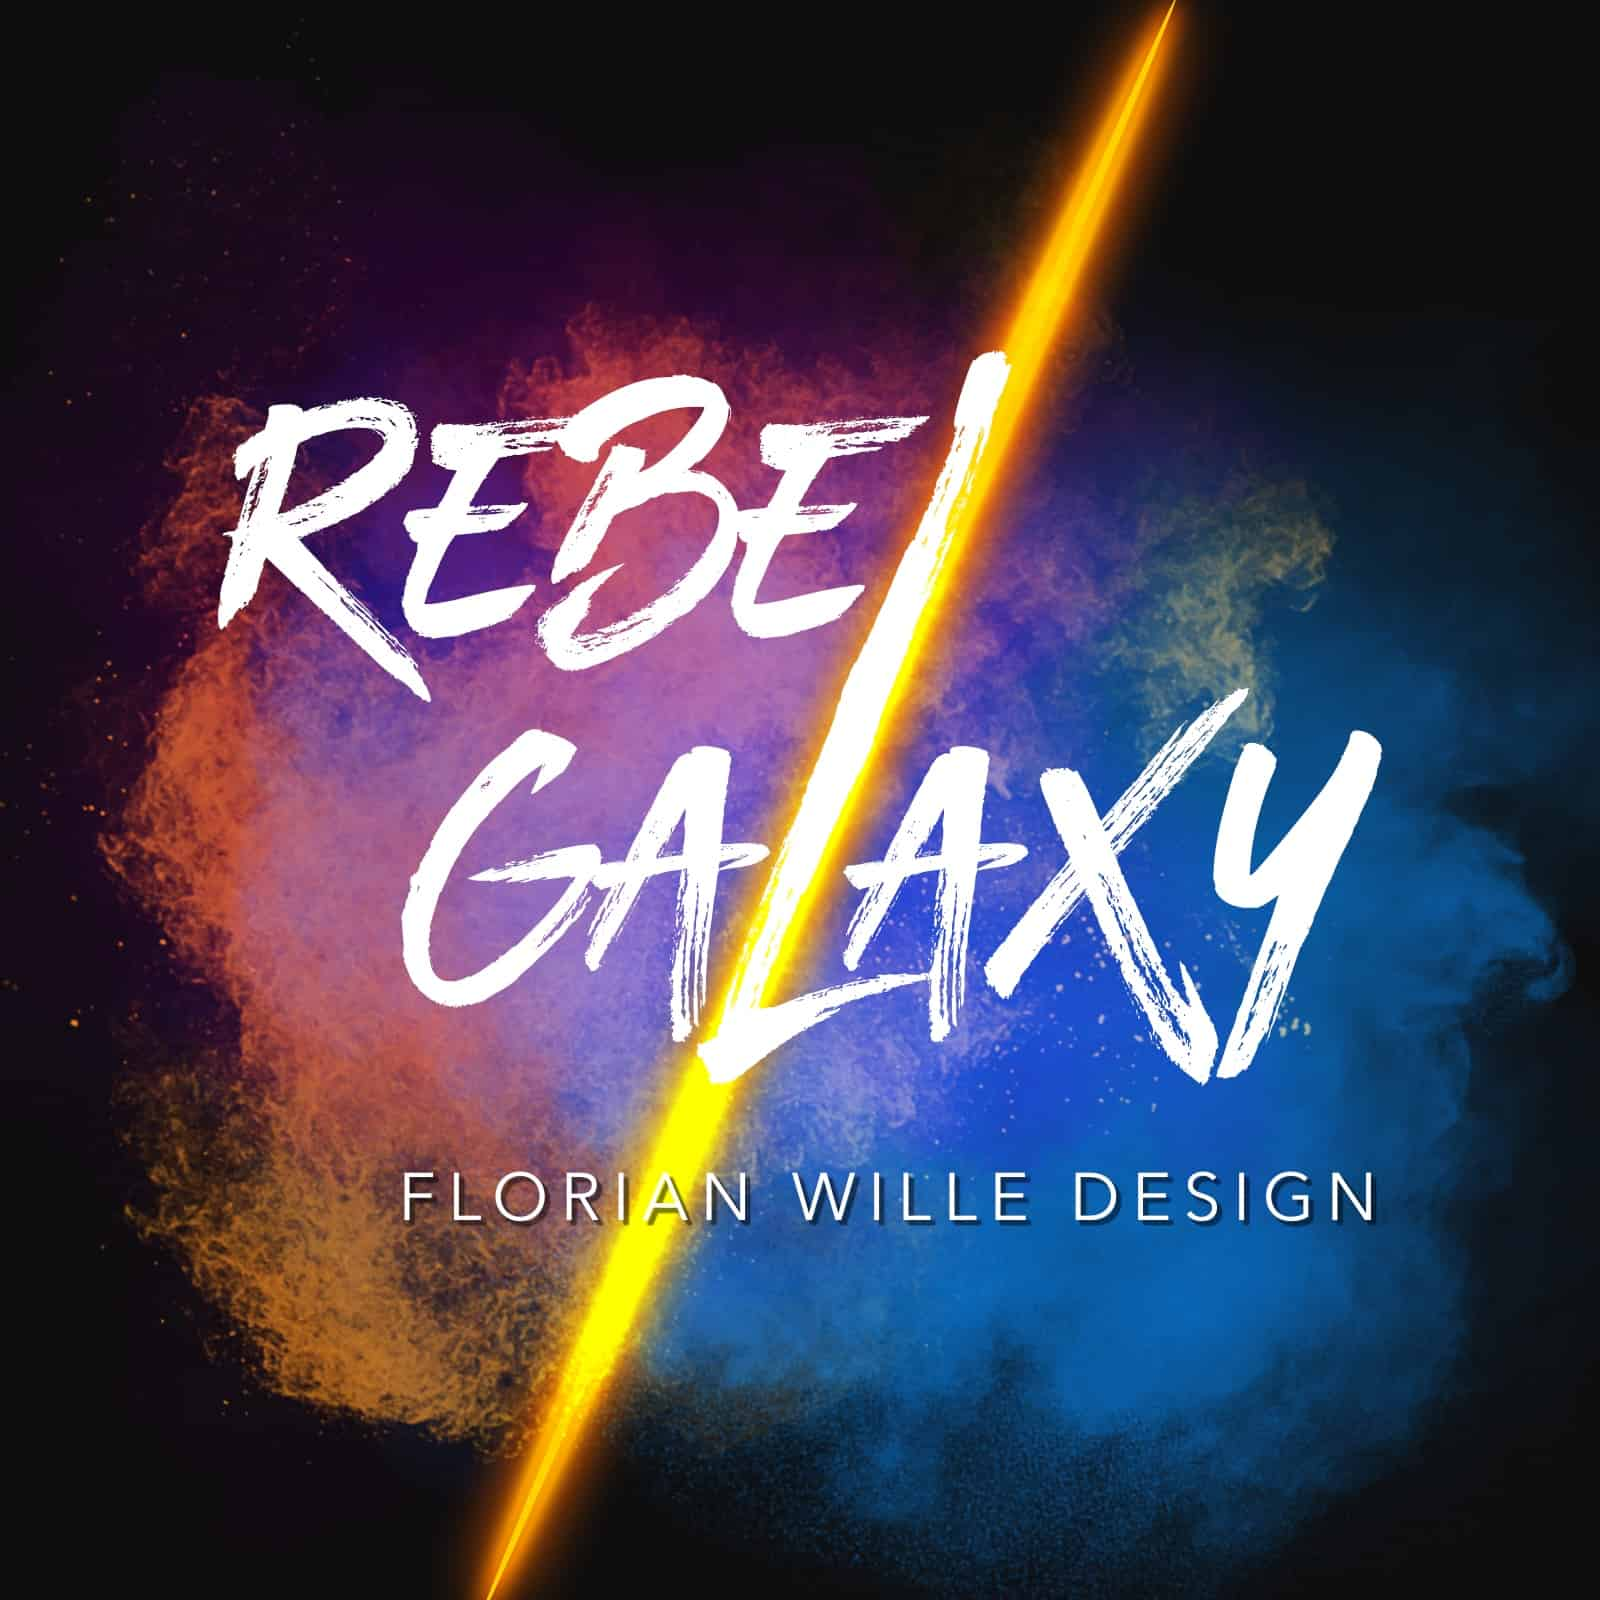 Rebel Galaxy Cover by Florian Wille Design